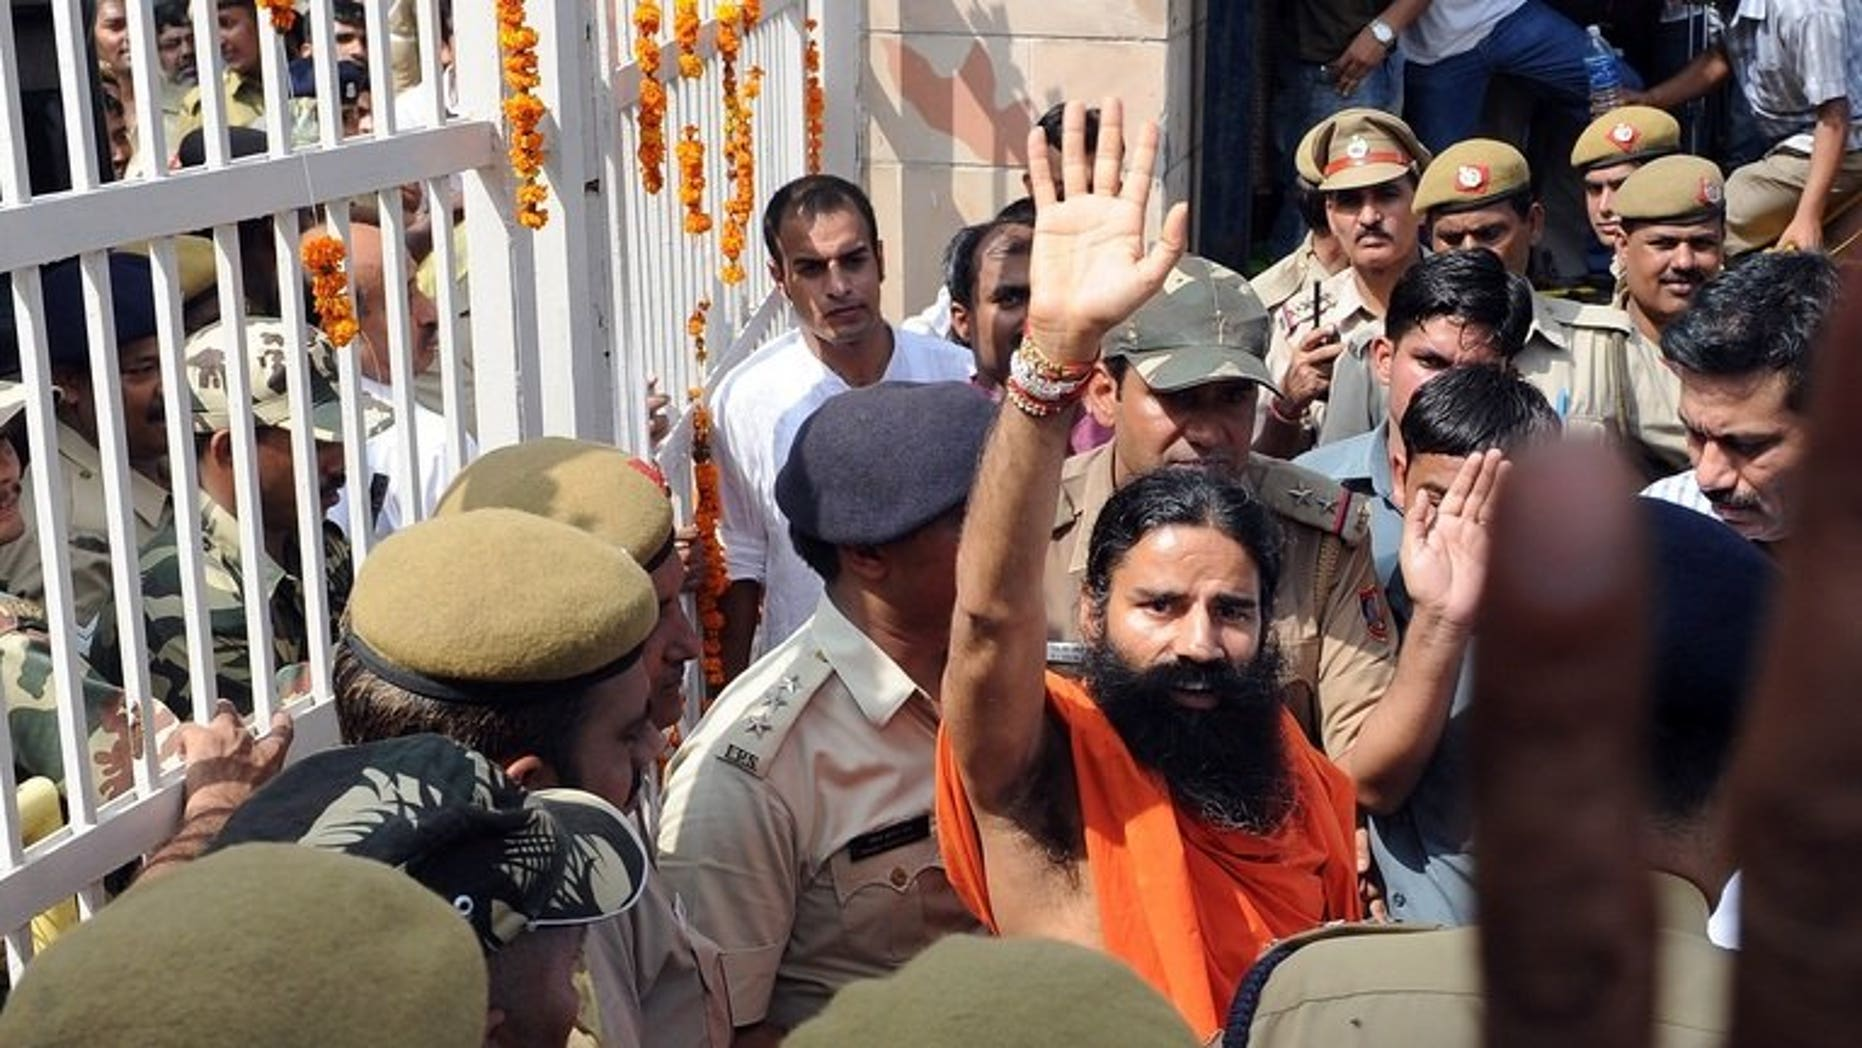 Yoga guru Swami Baba Ramdev (centre) waves to supporters of Indian social activist Anna Hazare as he comes out of Tihar prison during a protest in New Delhi on August 17, 2011. Swami Ramdev, who heads a global yoga empire, was detained Saturday at London's Heathrow airport and questioned for six hours by British customs officials, the Press Trust of India reported.